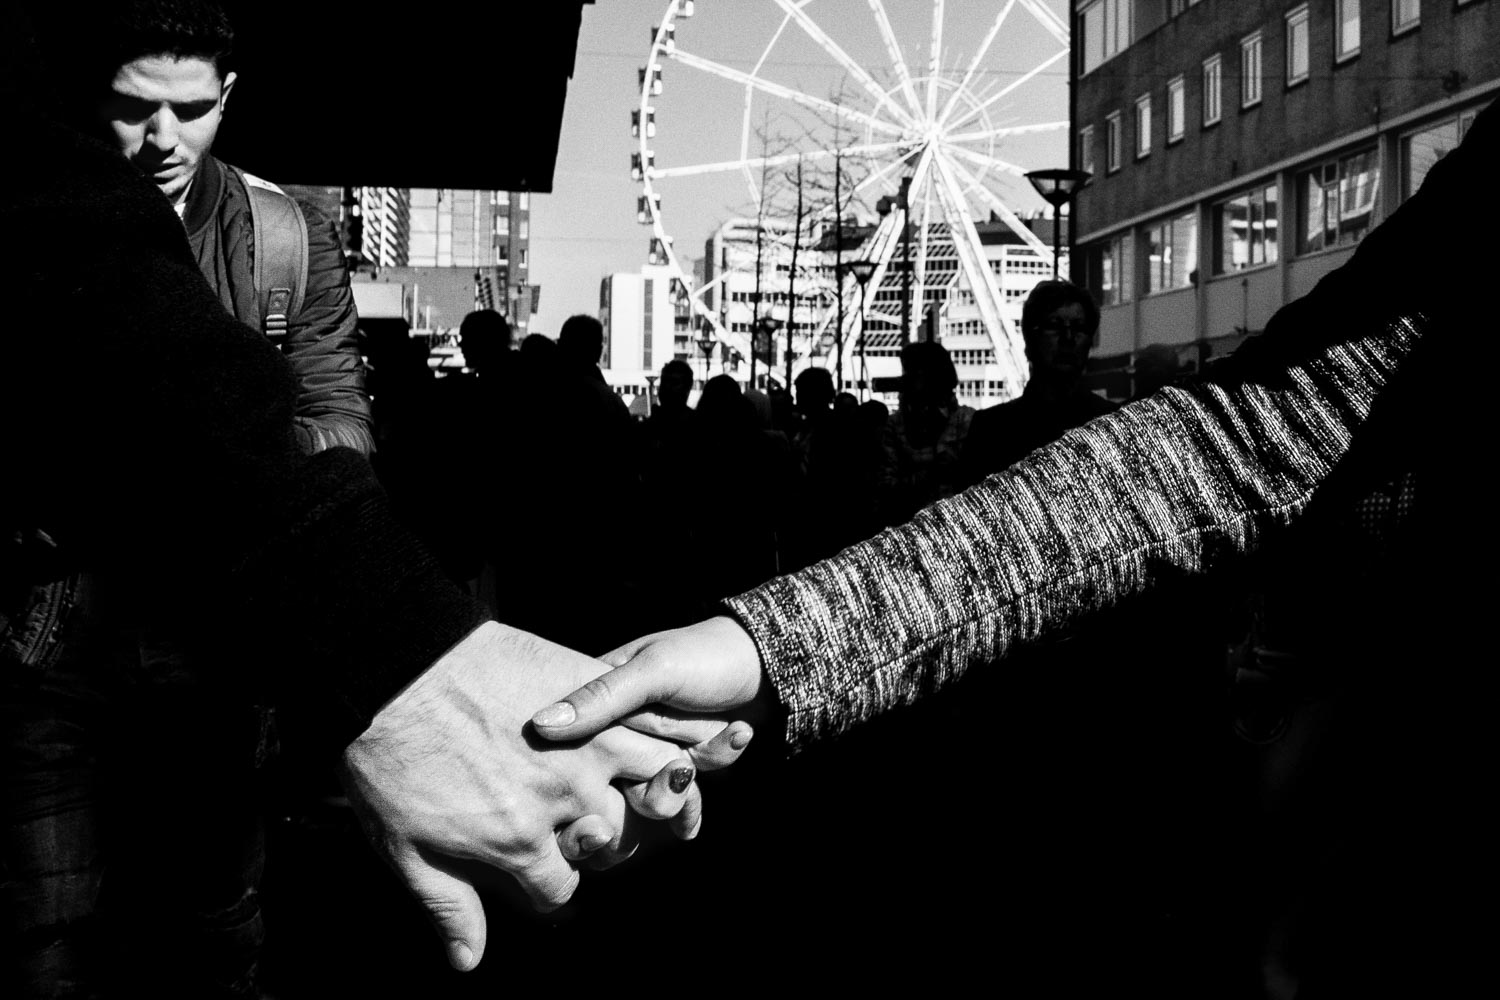 street street photo street photography life is Merel Schoneveld photographie de rue